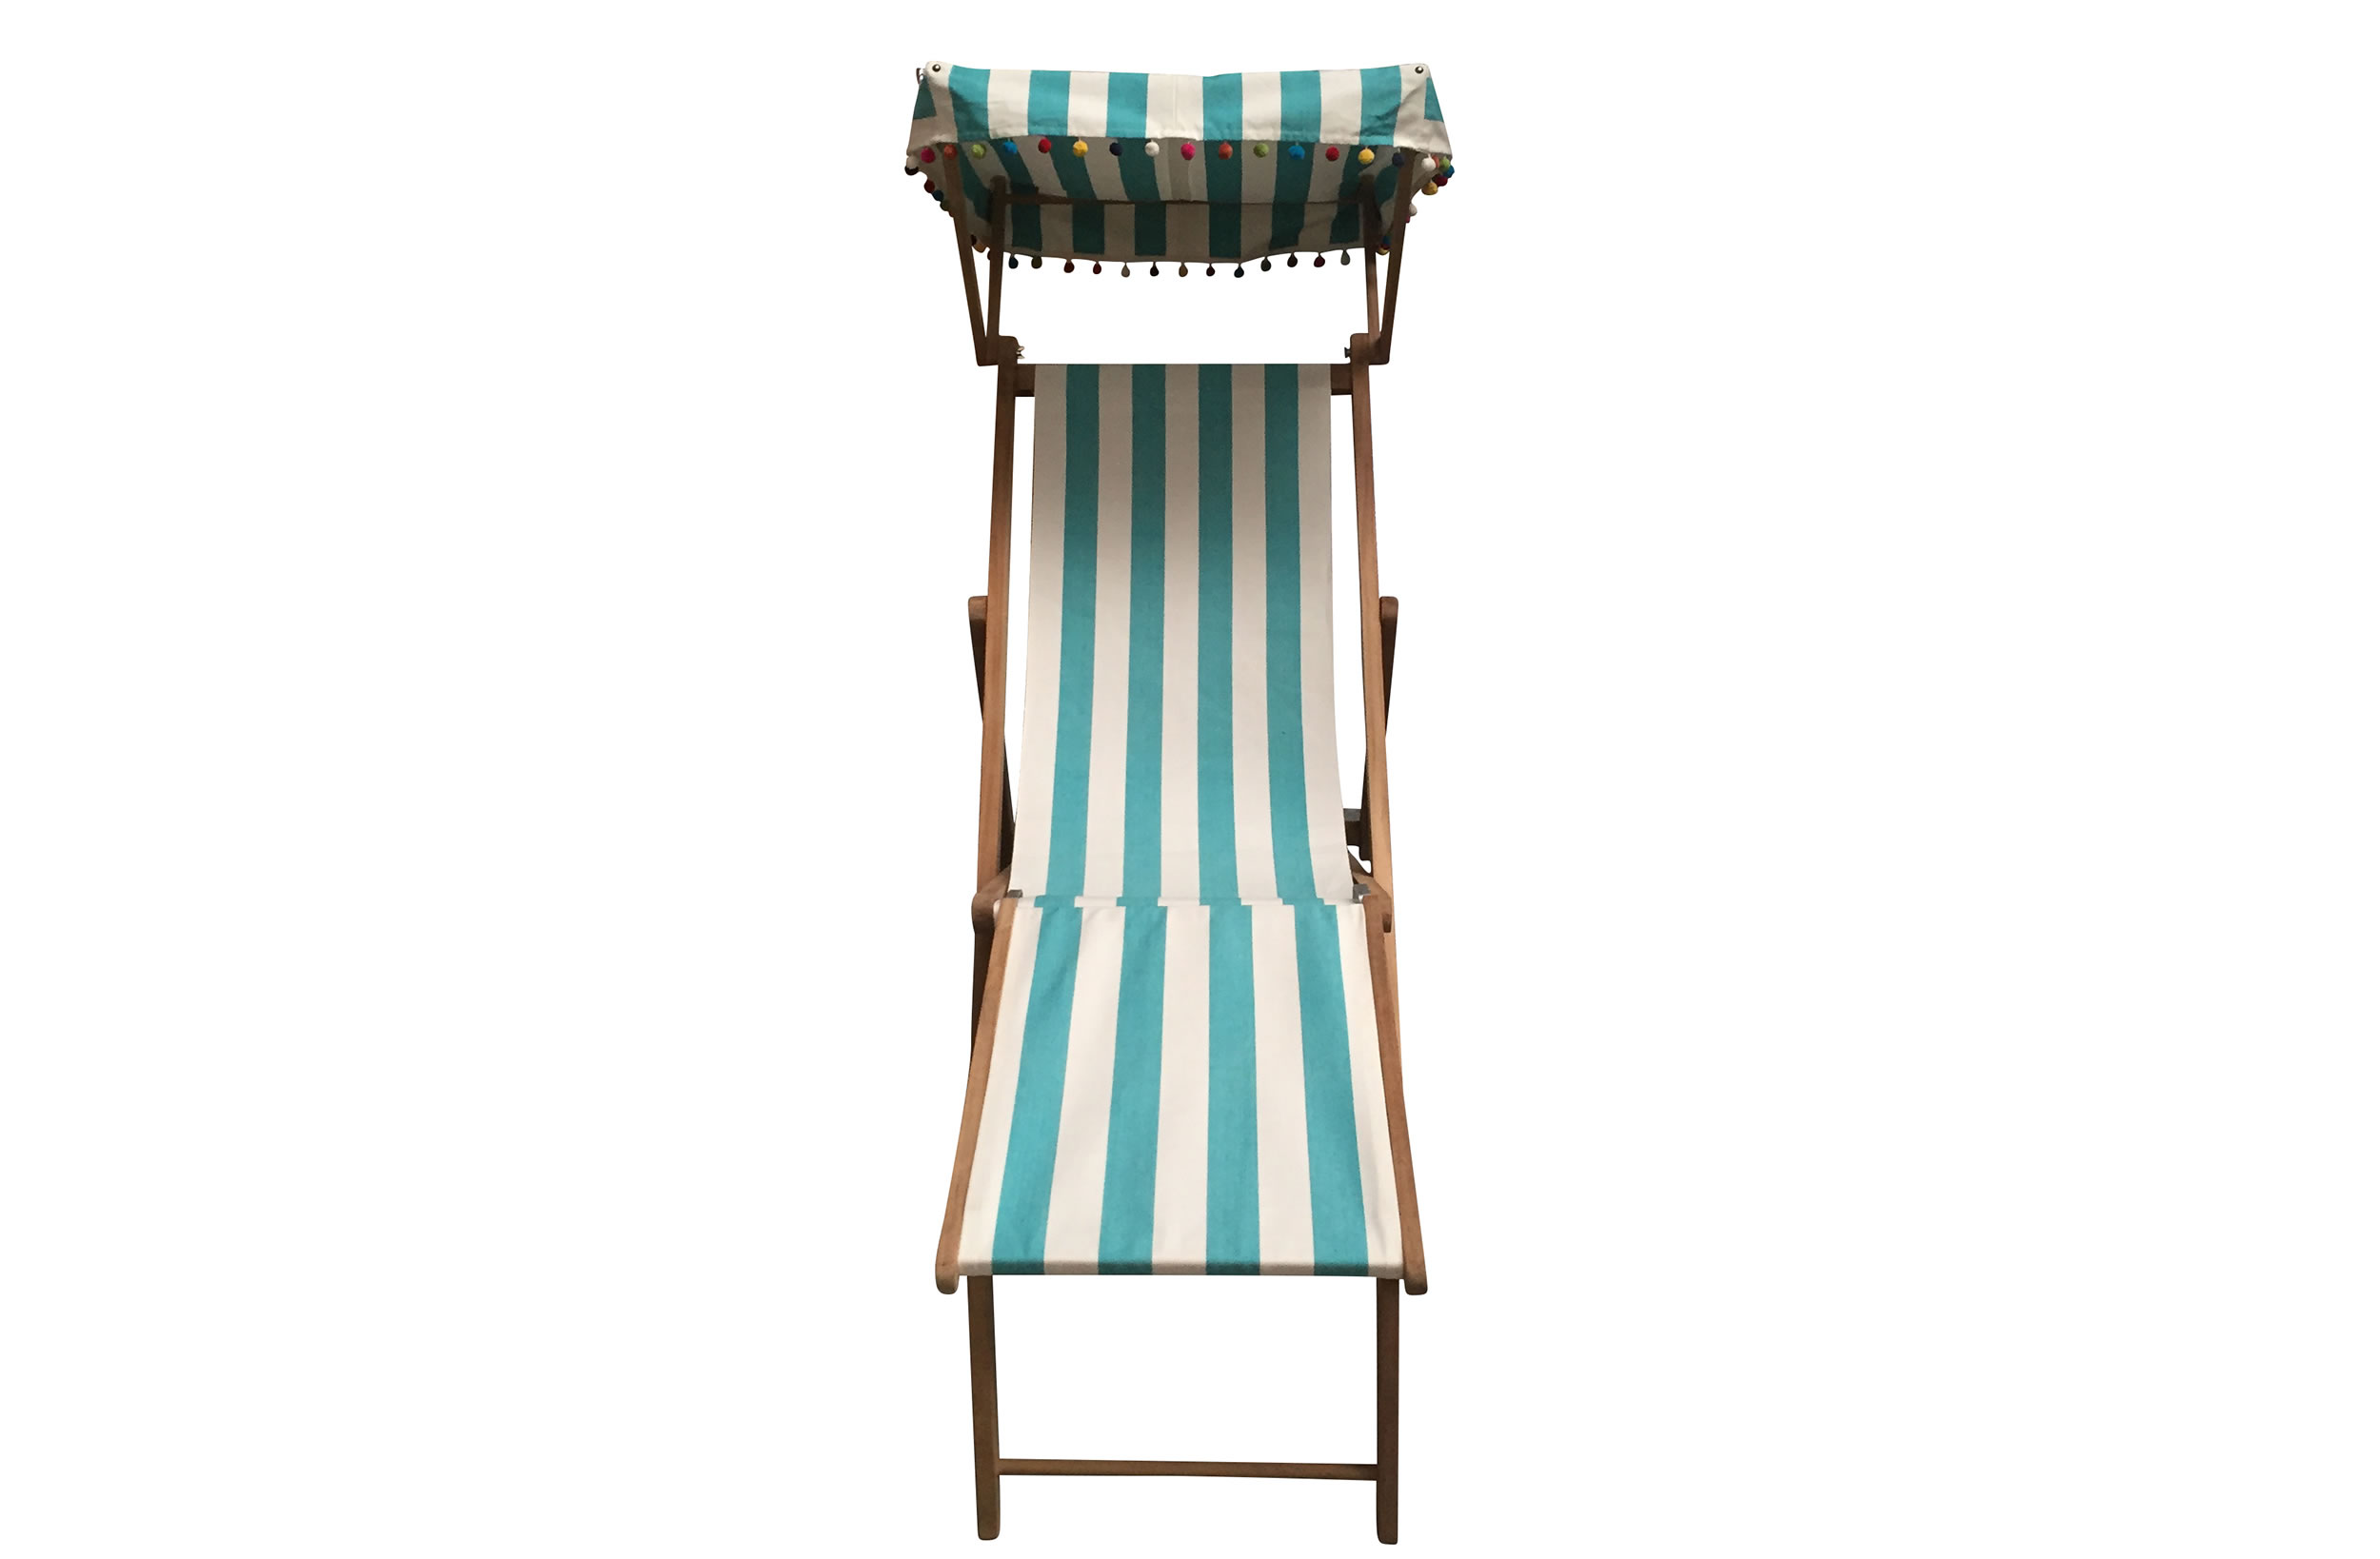 turquoise, white- Edwardian Deckchairs with Canopy and Footstool